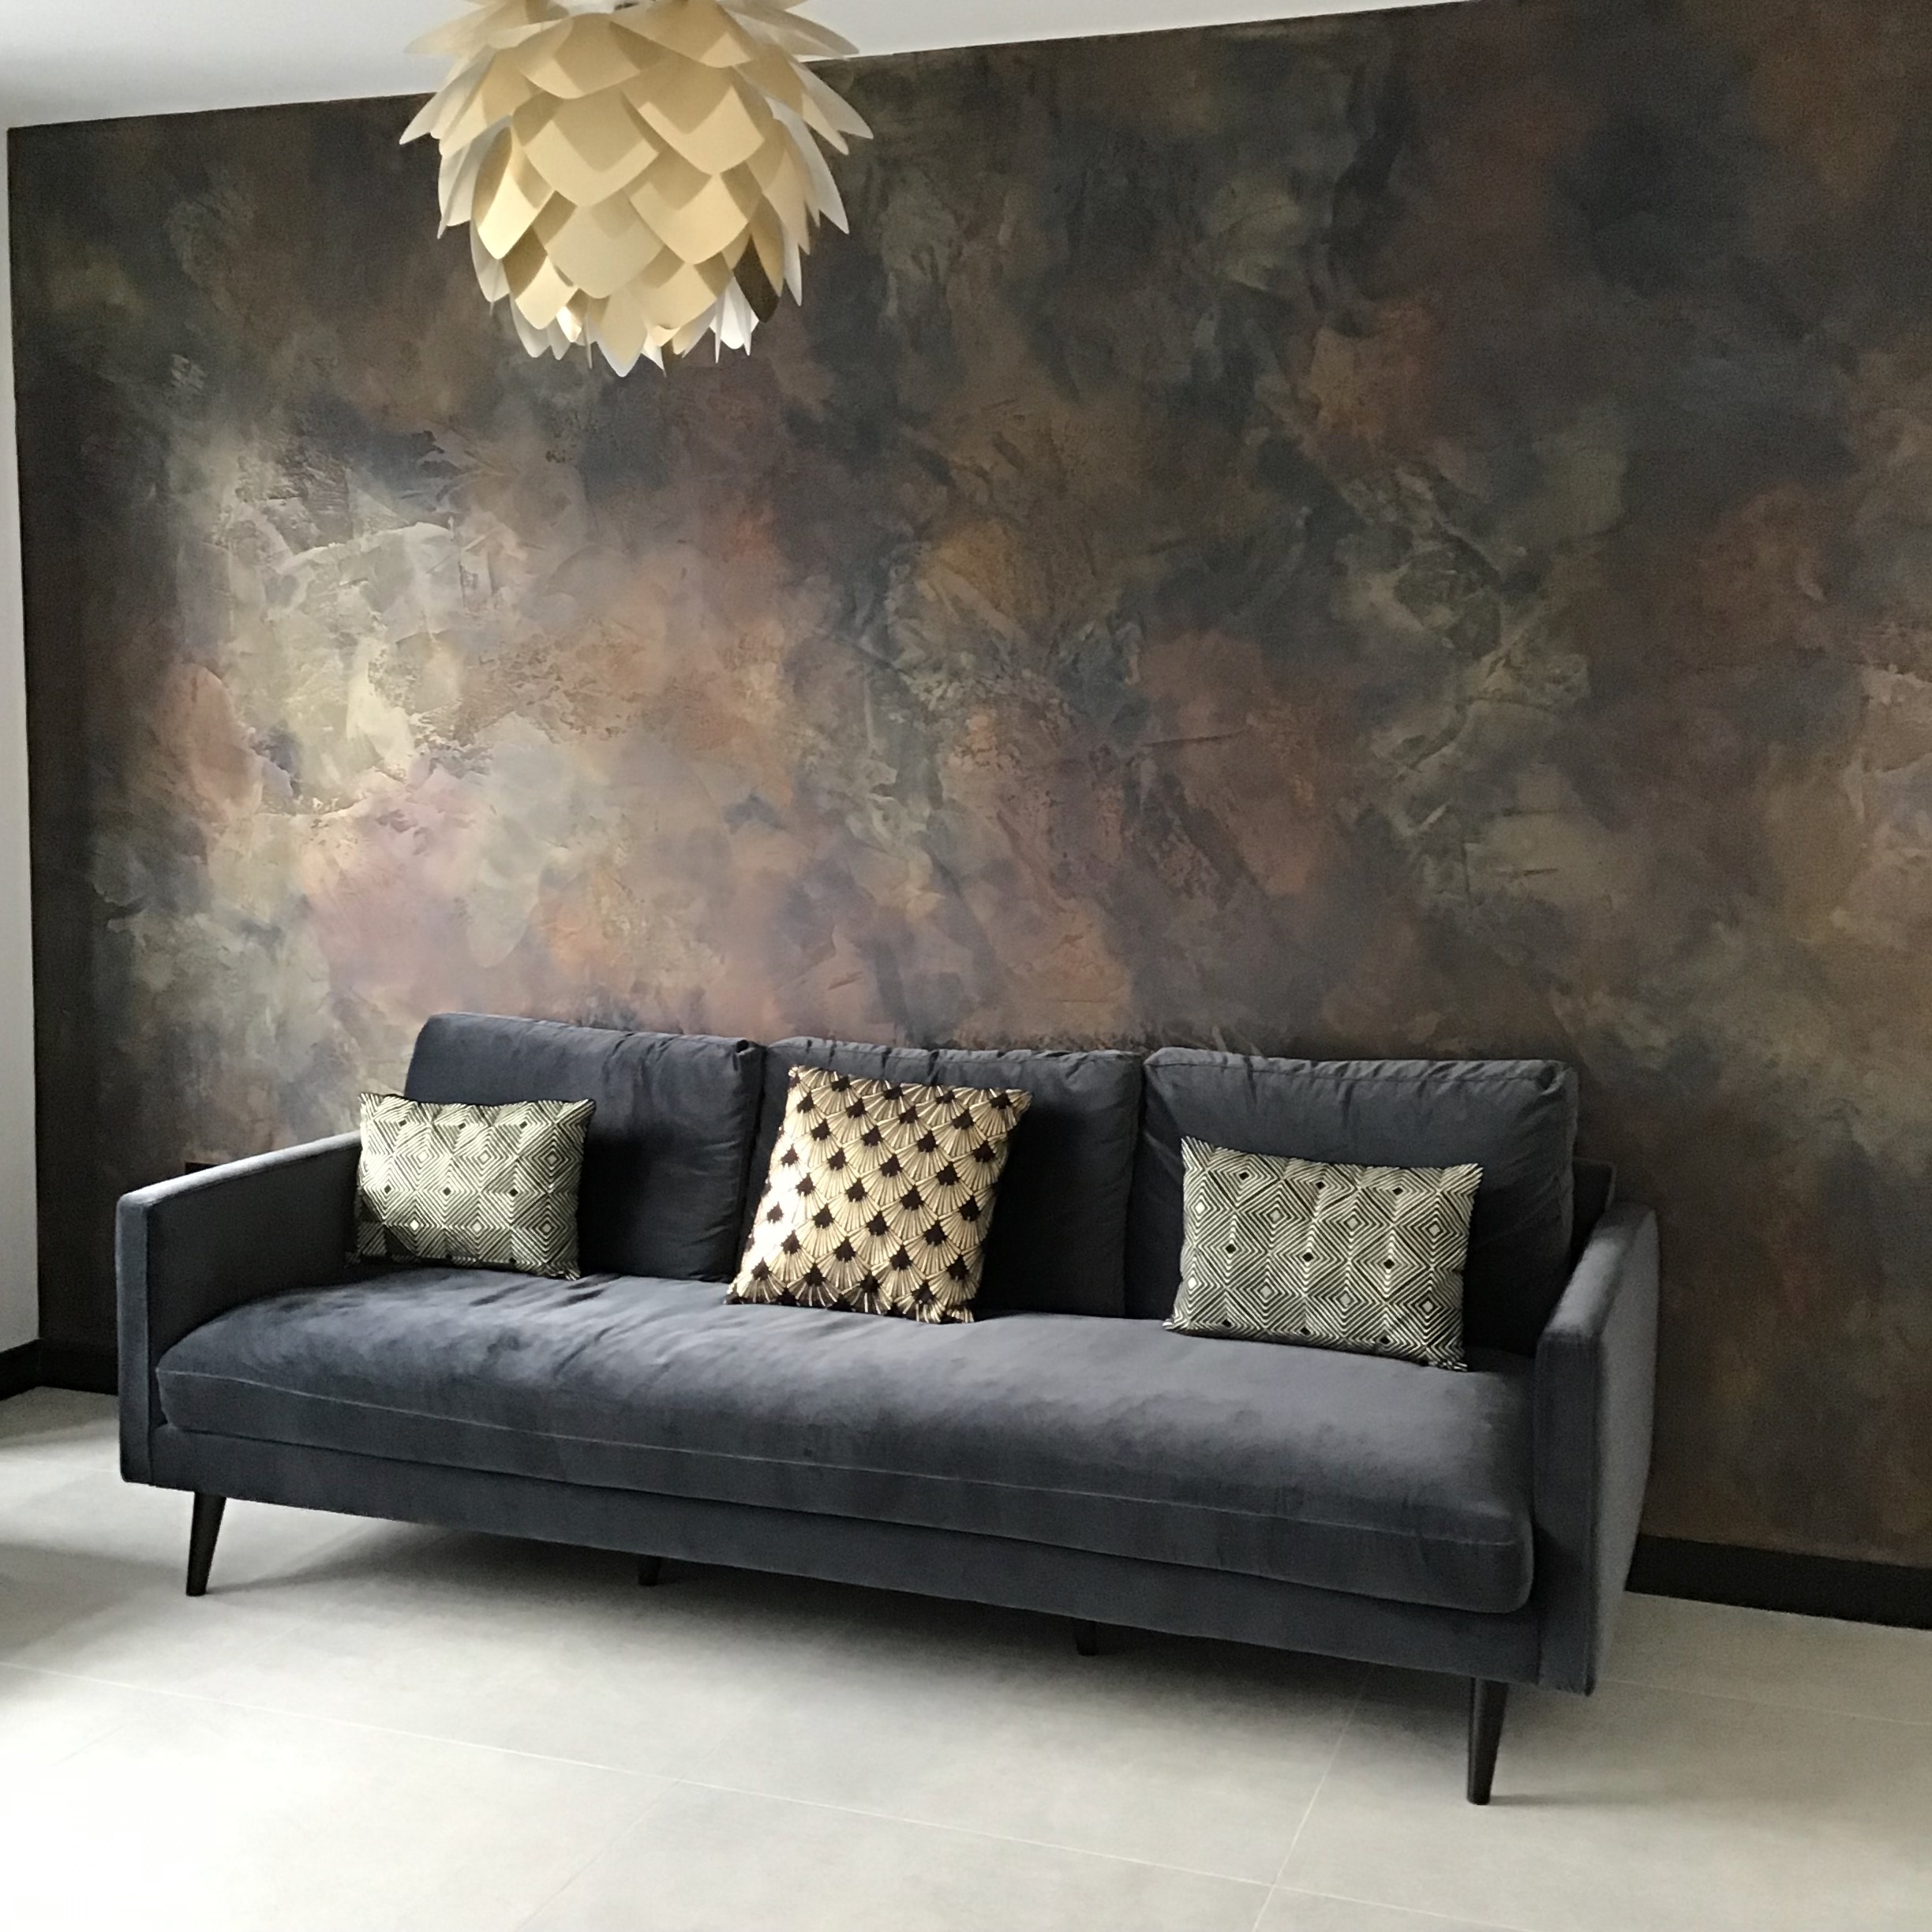 One of our black bespoke polished plaster feature wall with copper, bronze and gold details.